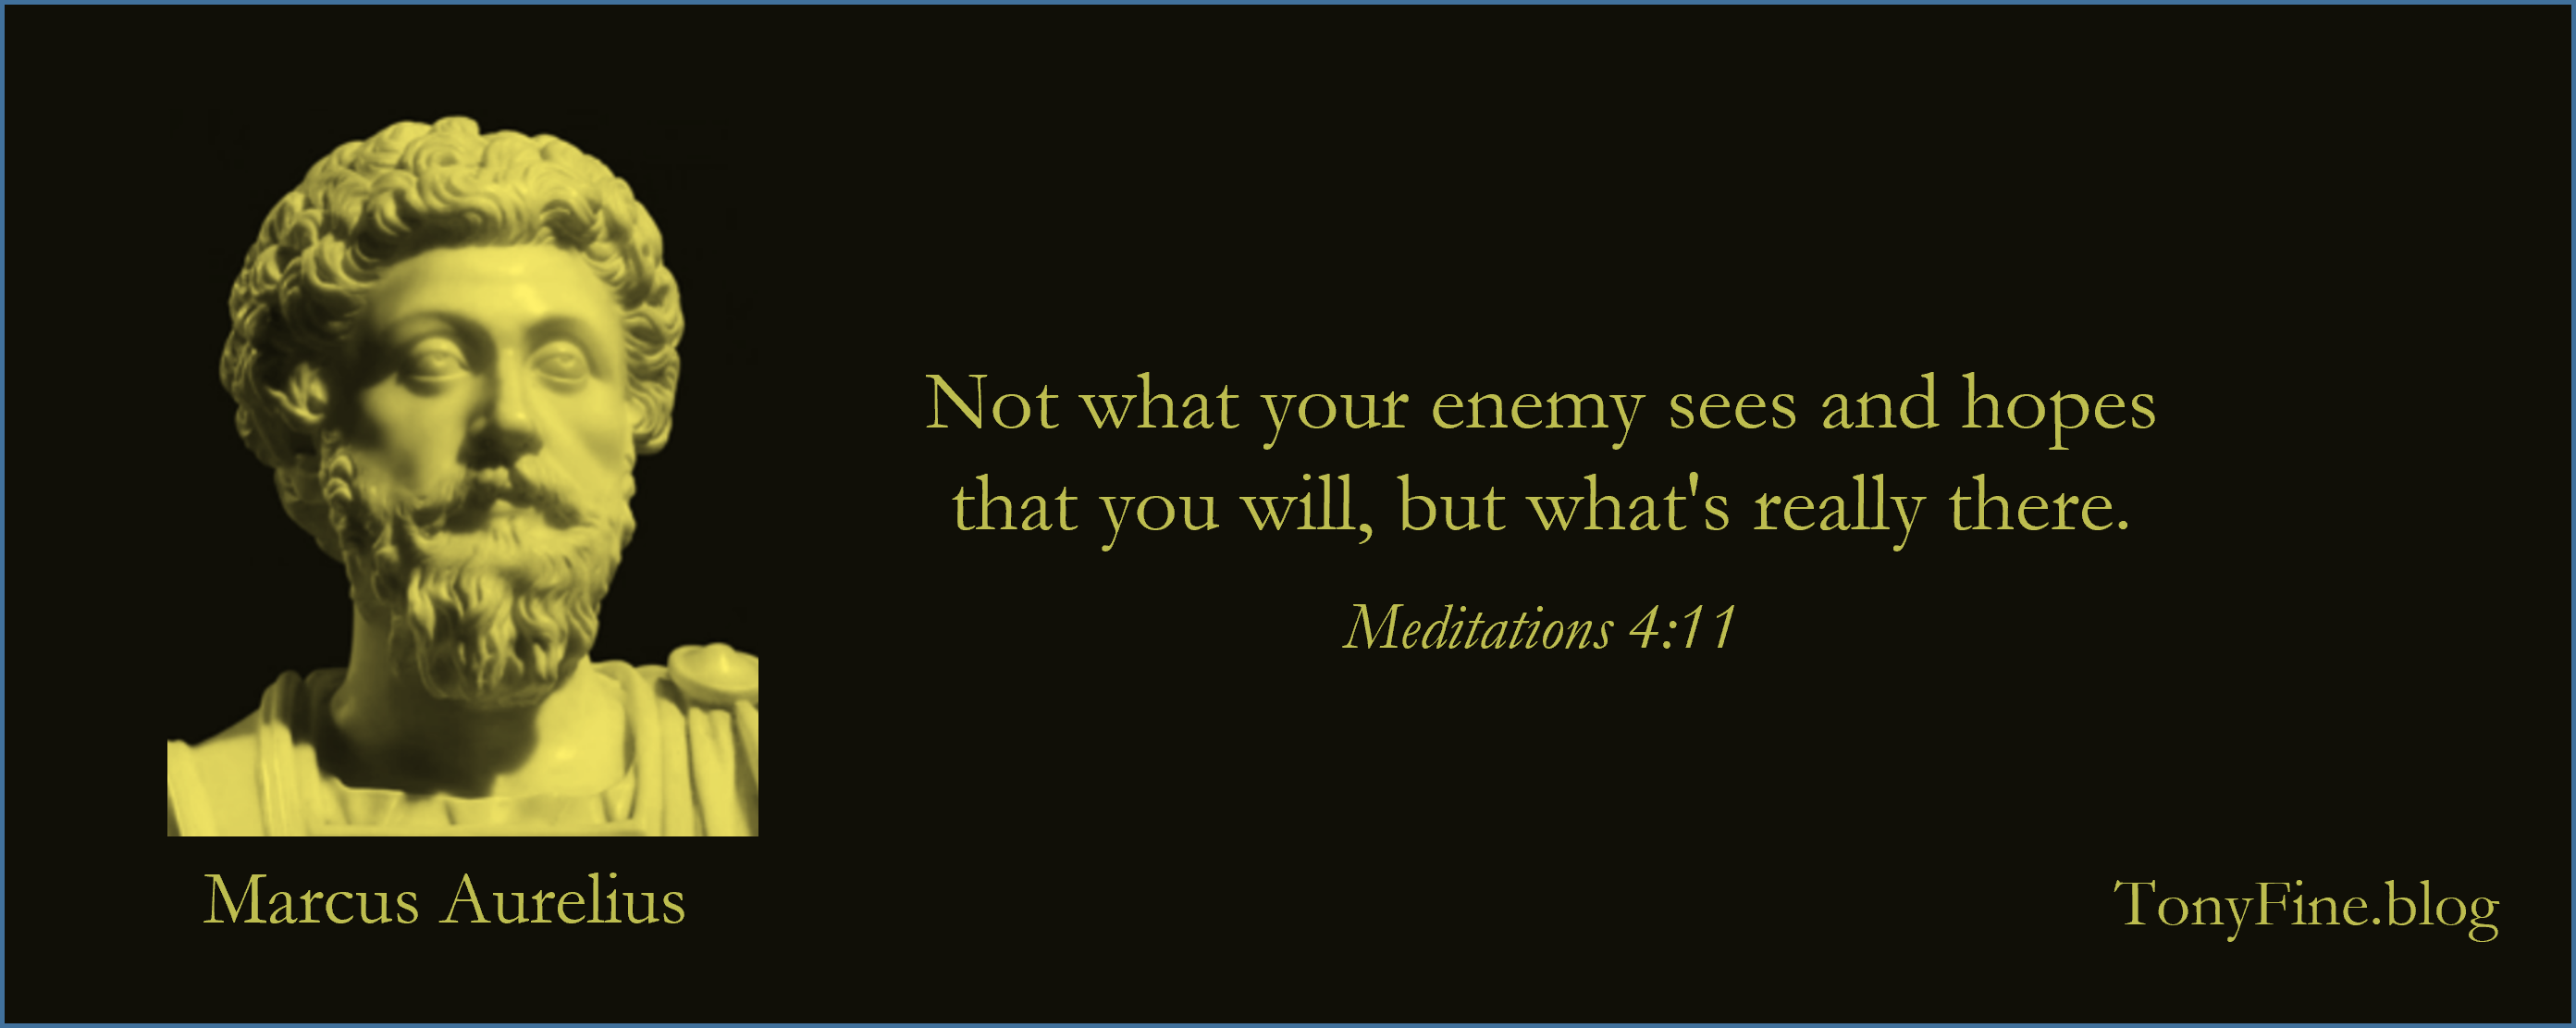 Not what your enemy sees and hopes that you will, but what's really there. -Marcus Aurelius